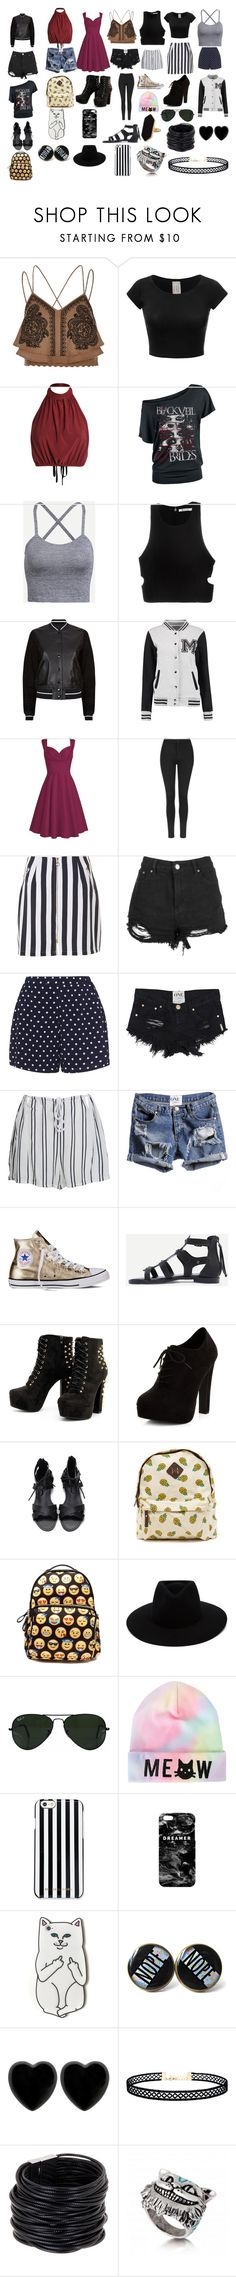 Untitled #246 by toxicupcakes on Polyvore featuring T By Alexander Wang, River Island, rag & bone, Boohoo, Topshop, Zizzi, WithChic, New Look, Converse and Saachi